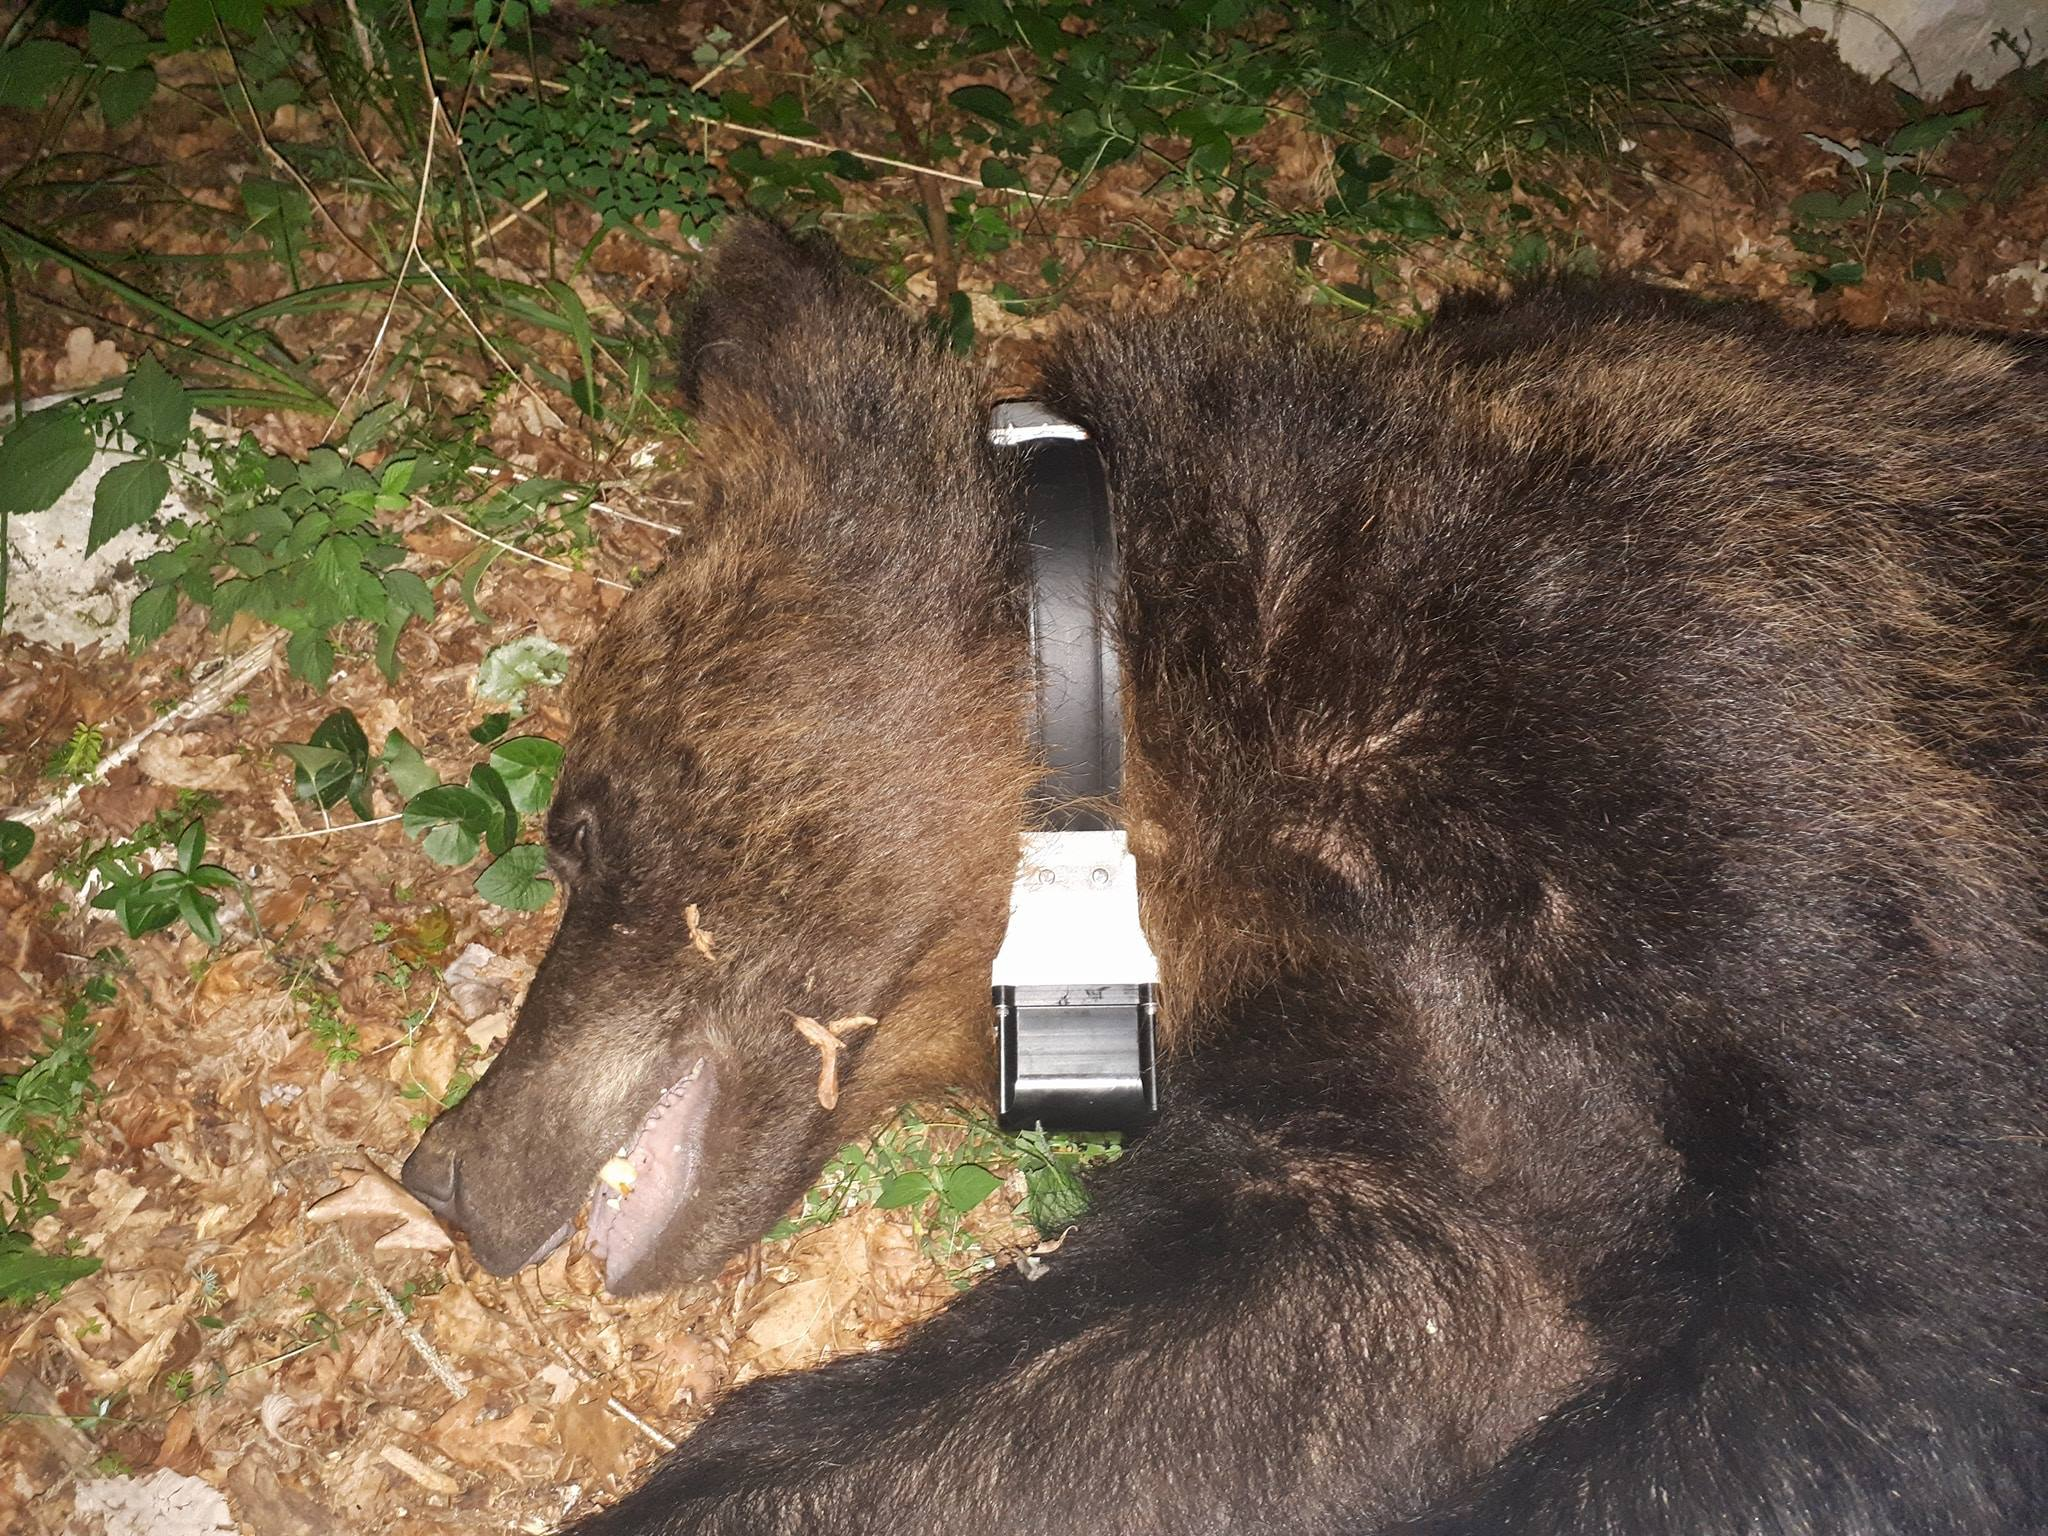 Two bears radio-collared in Slovenia this spring